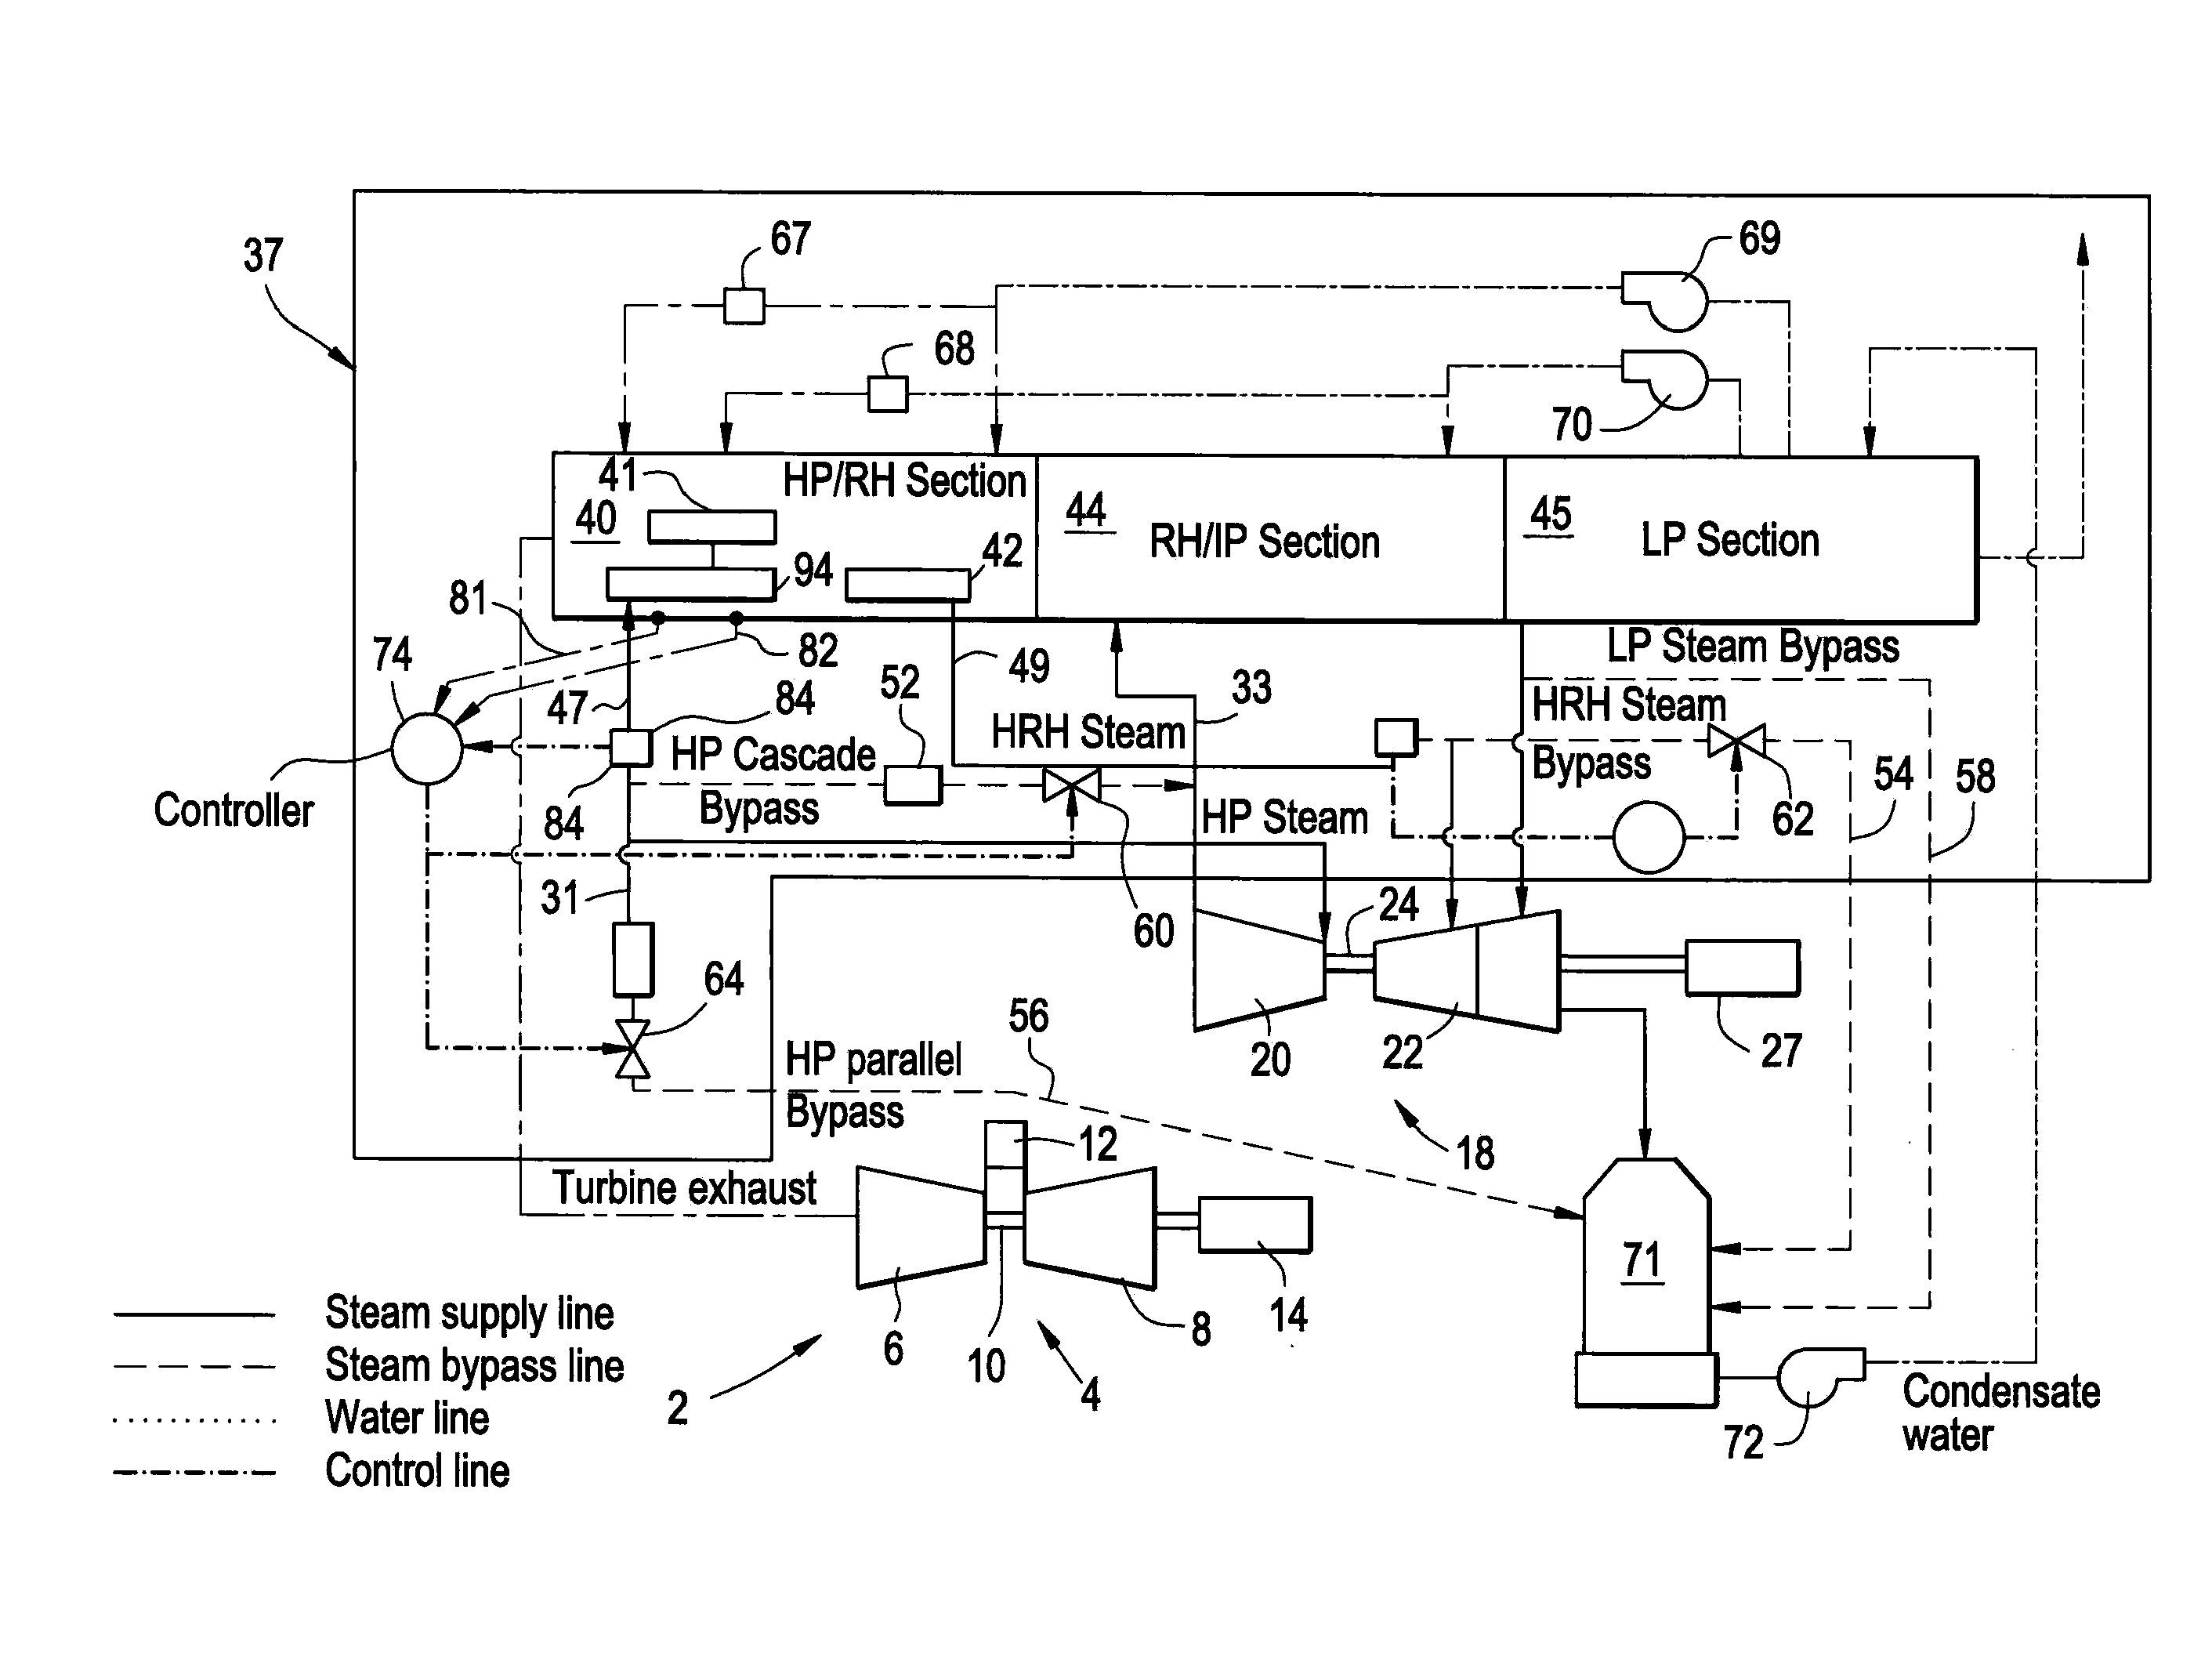 Patent US bined Cycle Power Plant Including a Heat